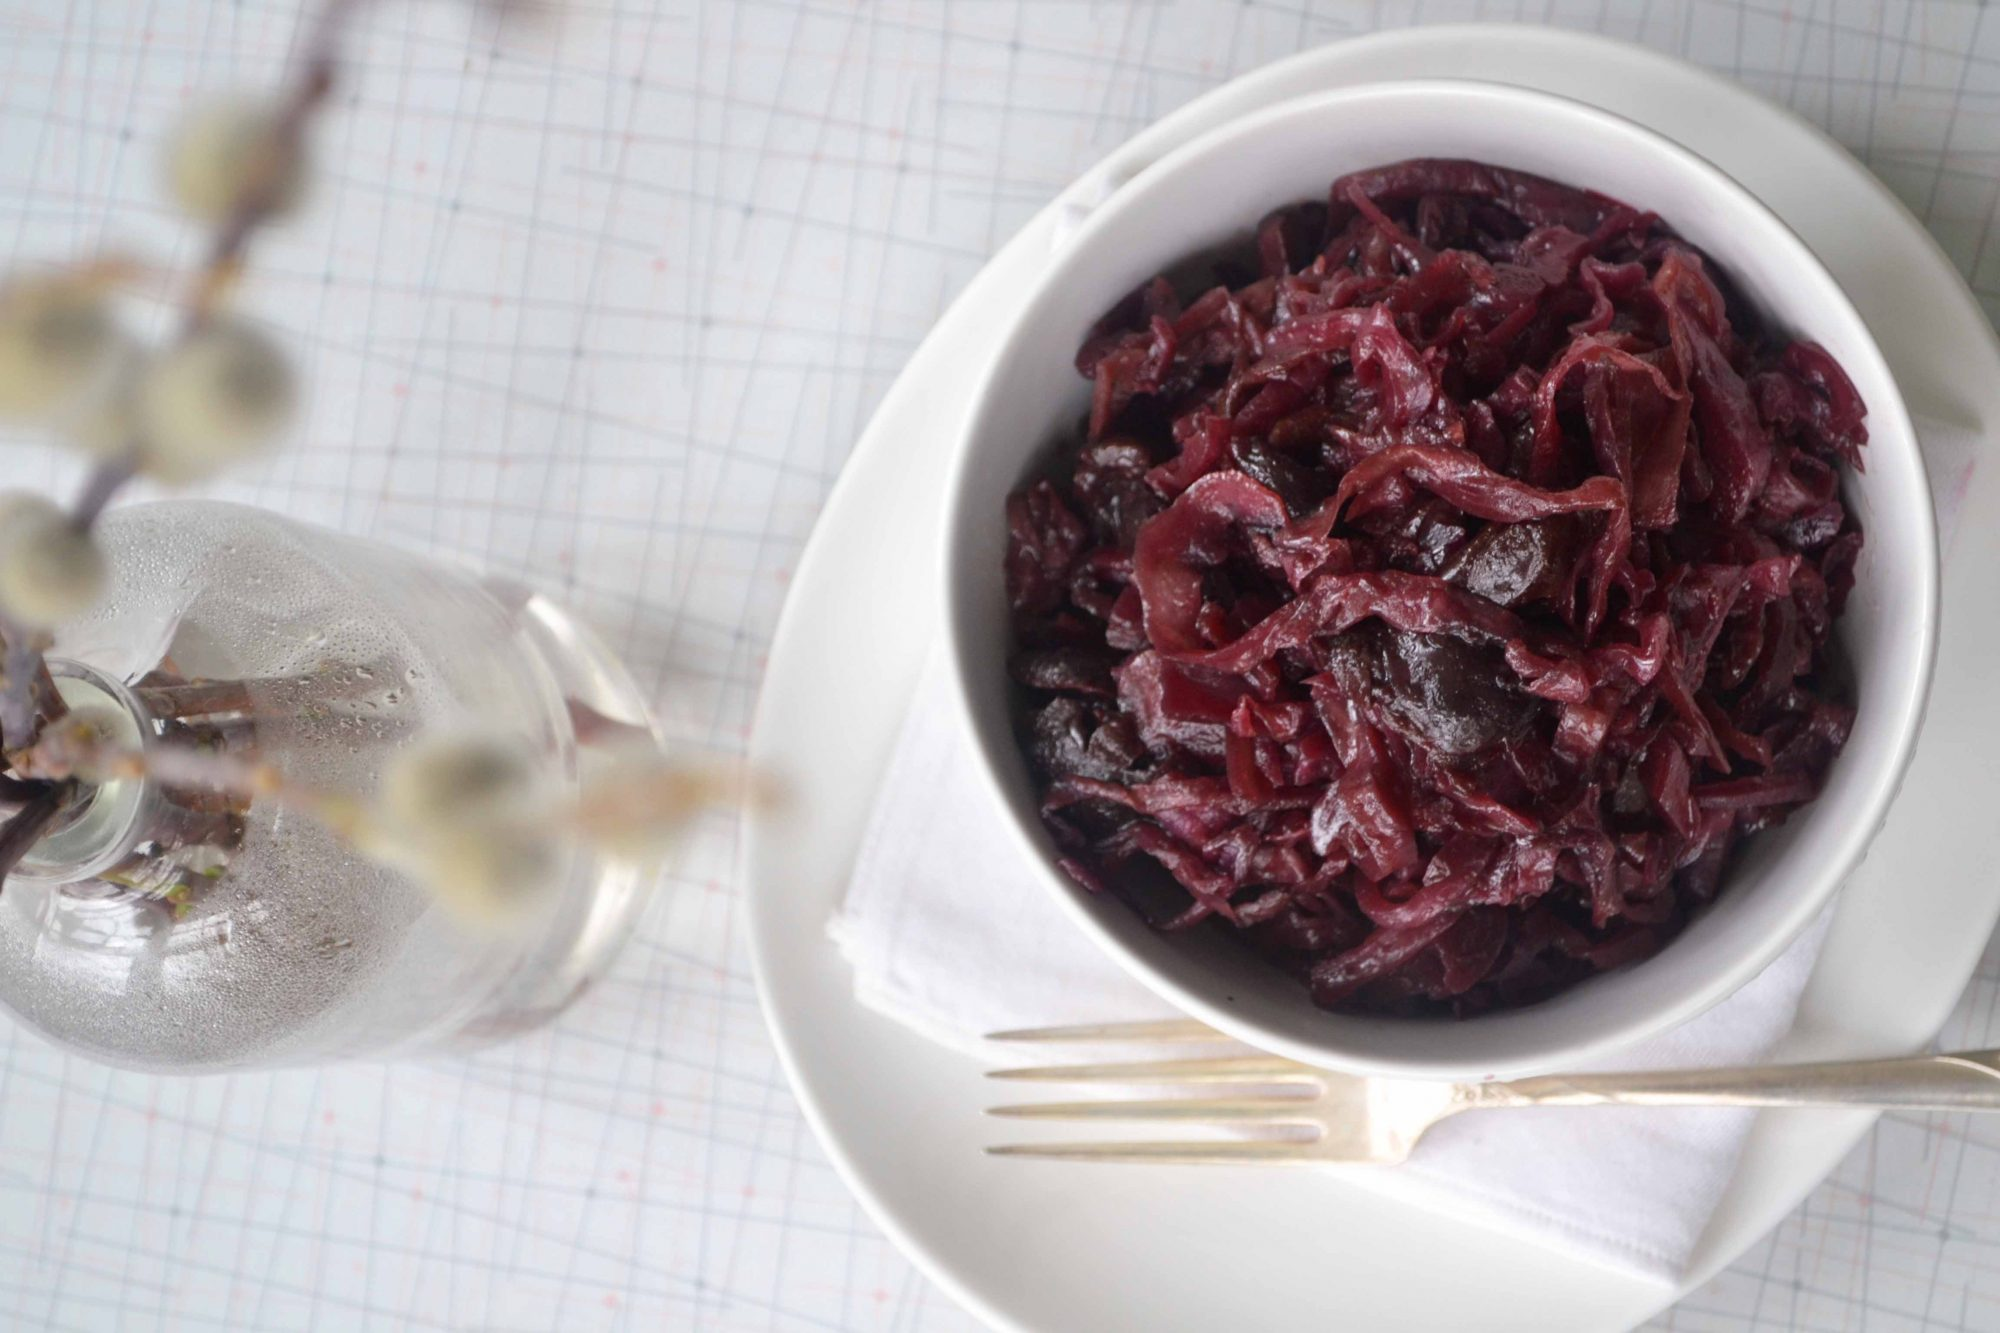 Braised red cabbage & cherries 1